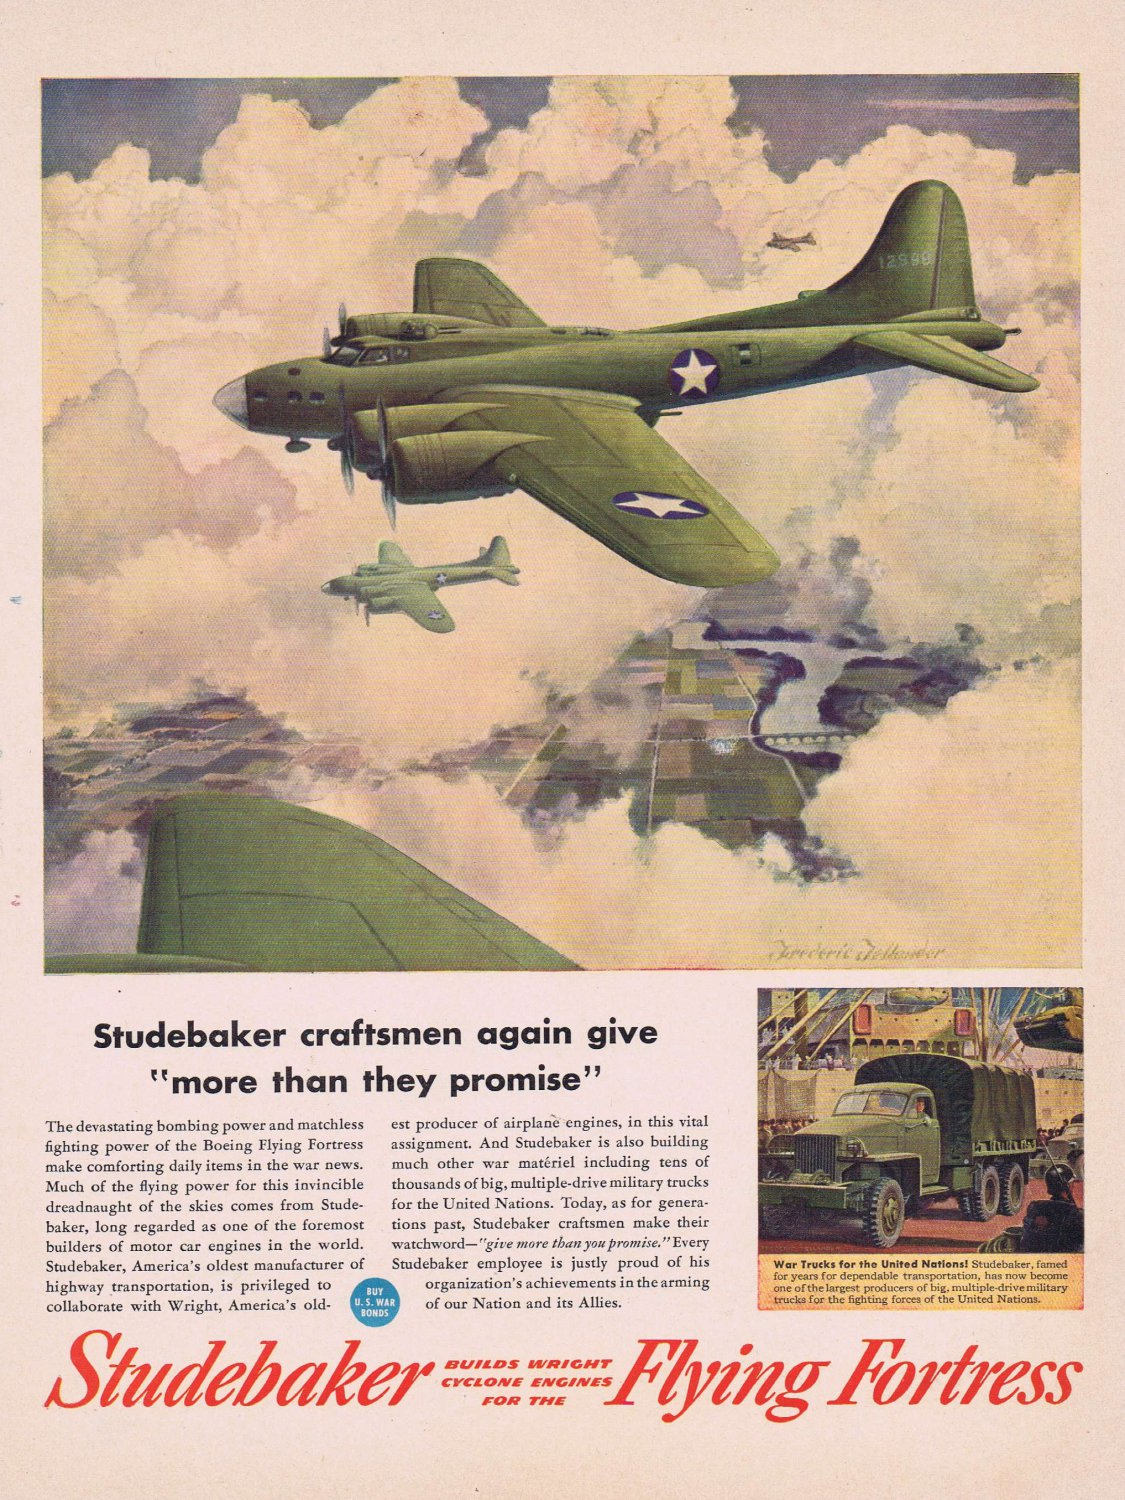 1944 Studebaker WW2 Flying Fortress War Plane Original Vintage Ad with Nice Military Art